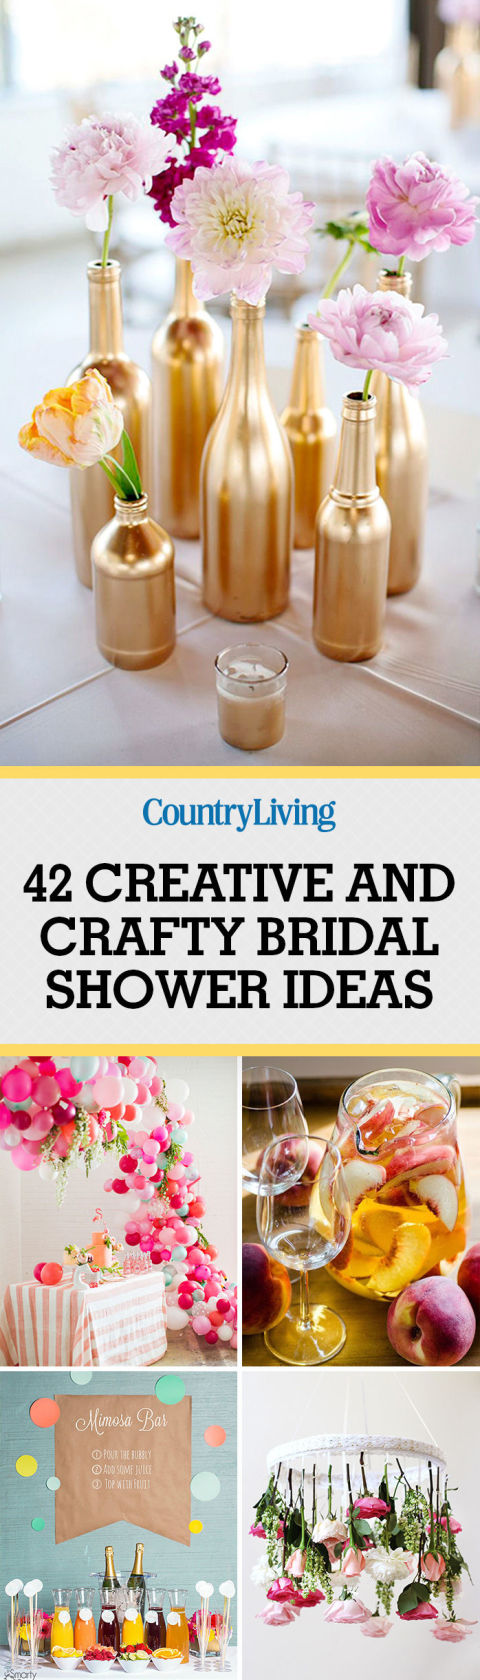 Kitchen Bridal Shower 40 Best Bridal Shower Ideas Fun Themes Food And Decorating